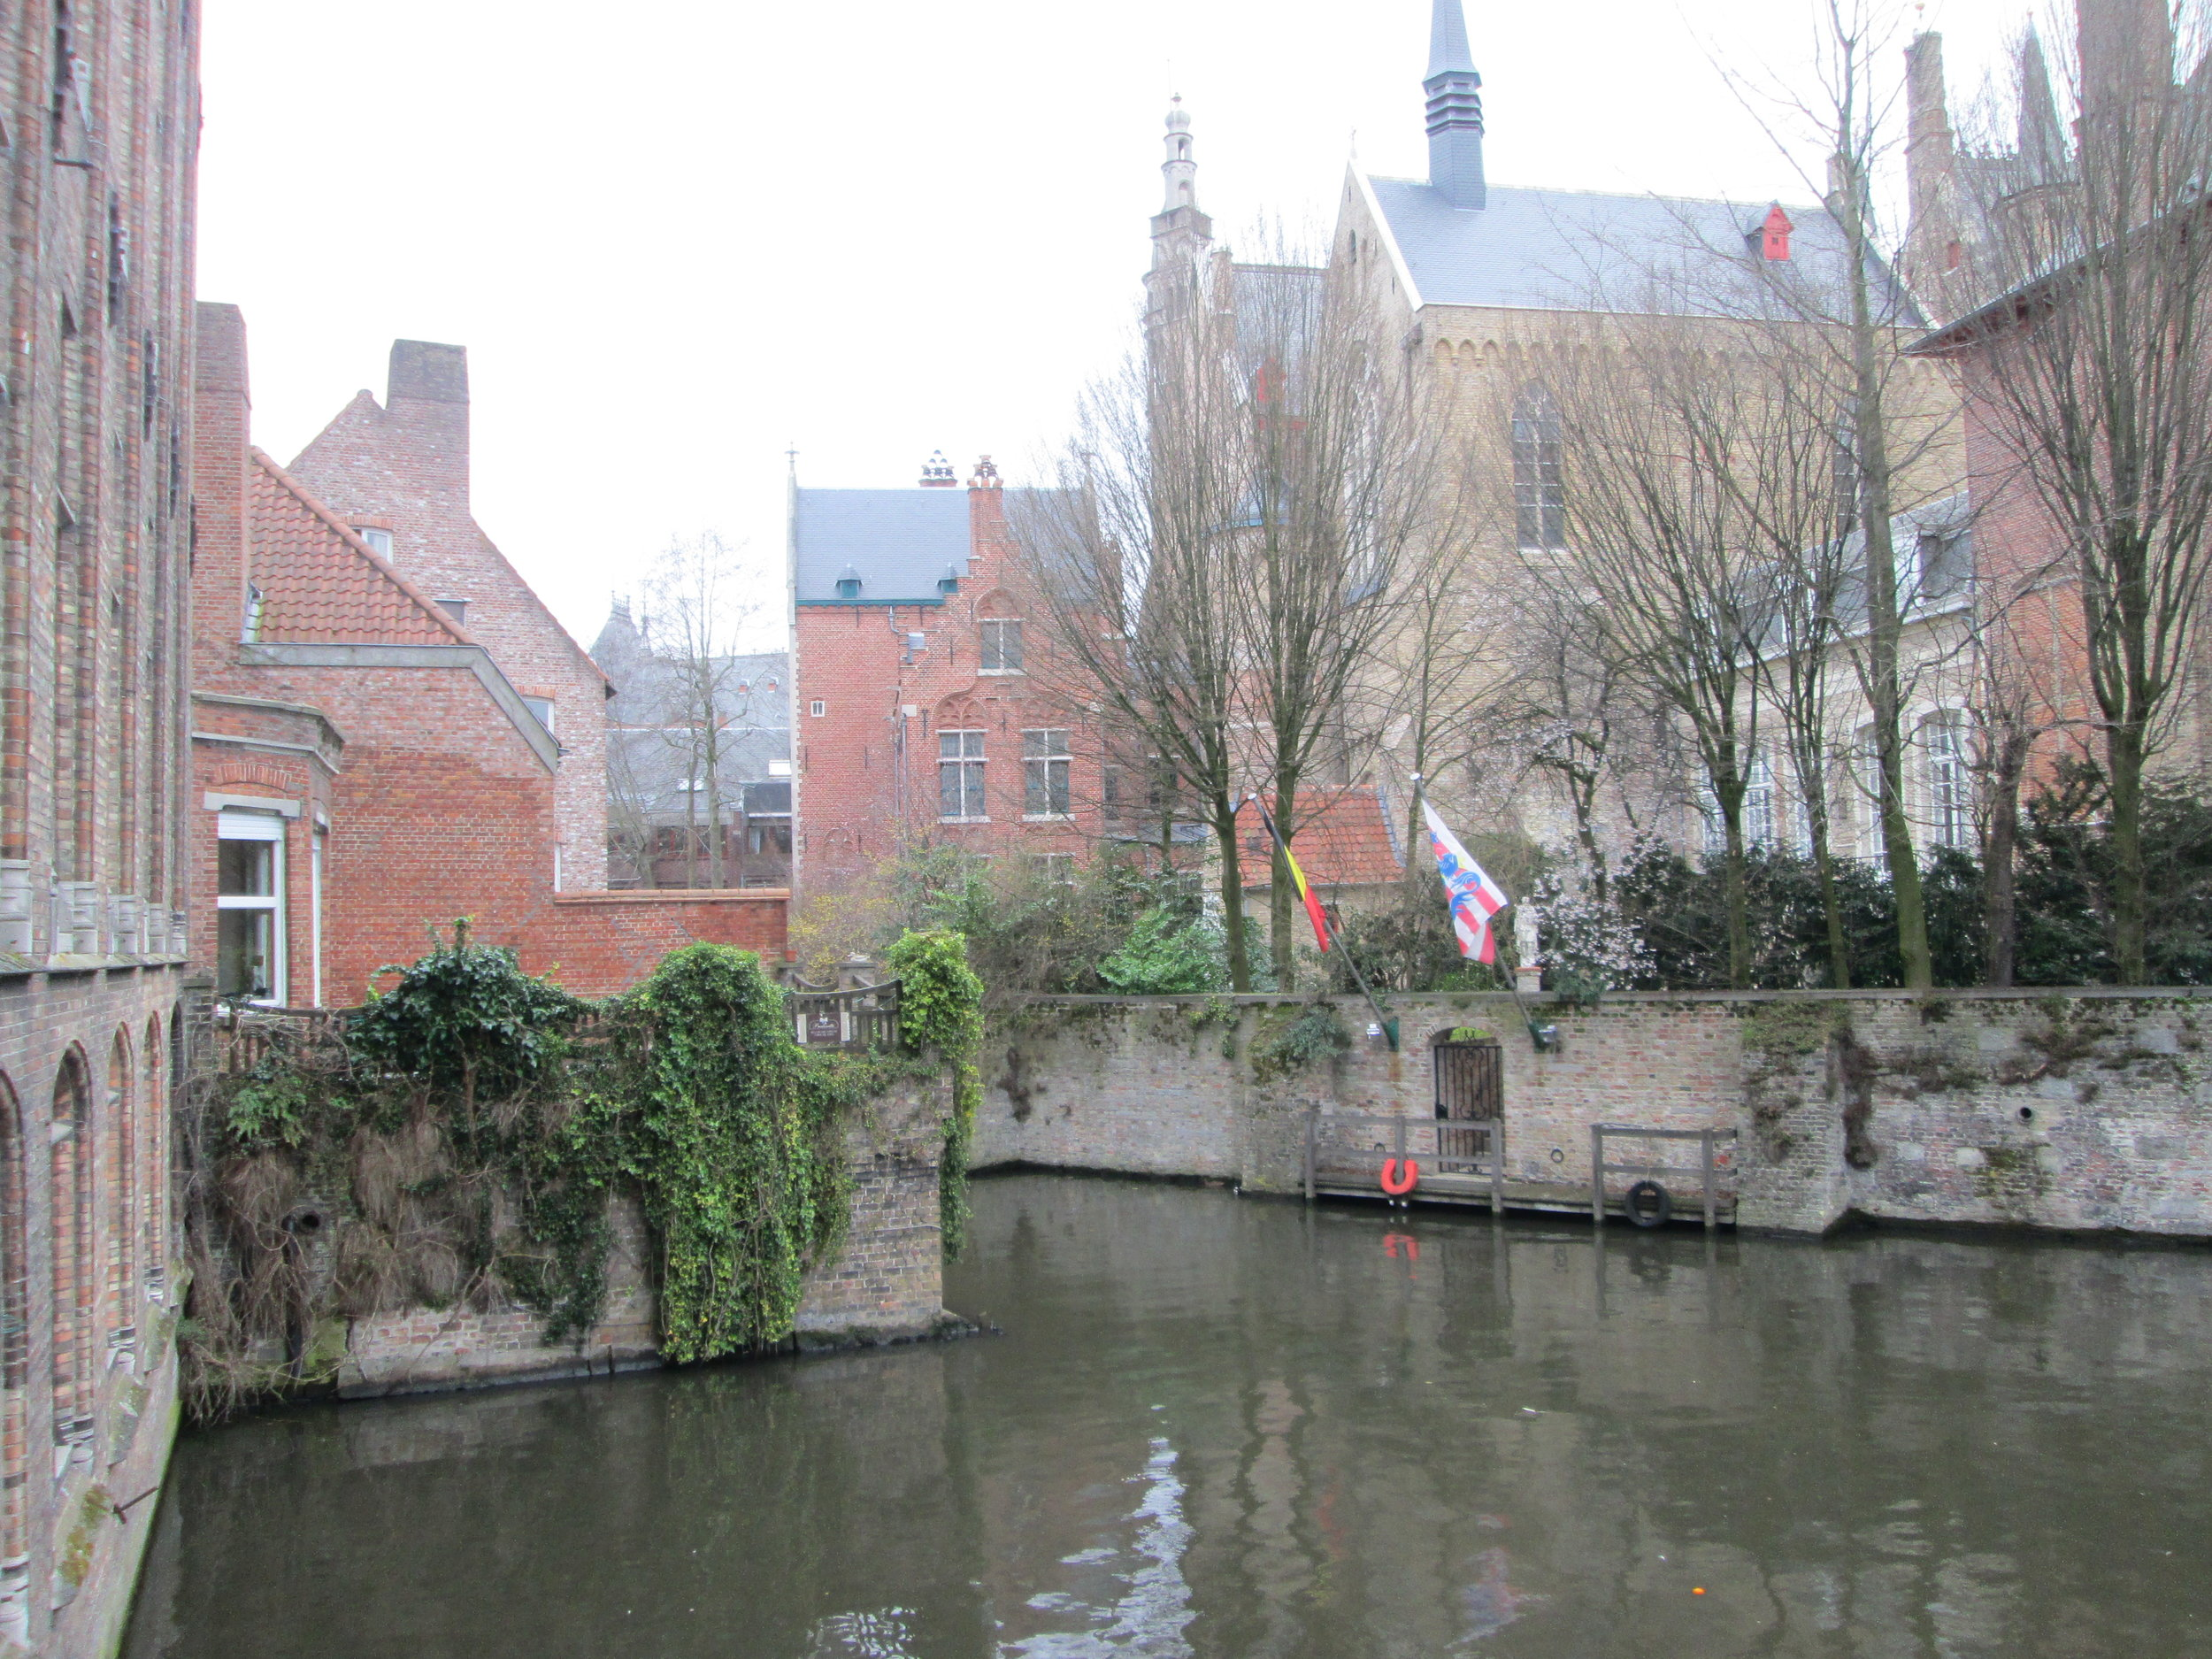 Pretty shot of a canal in Bruges.